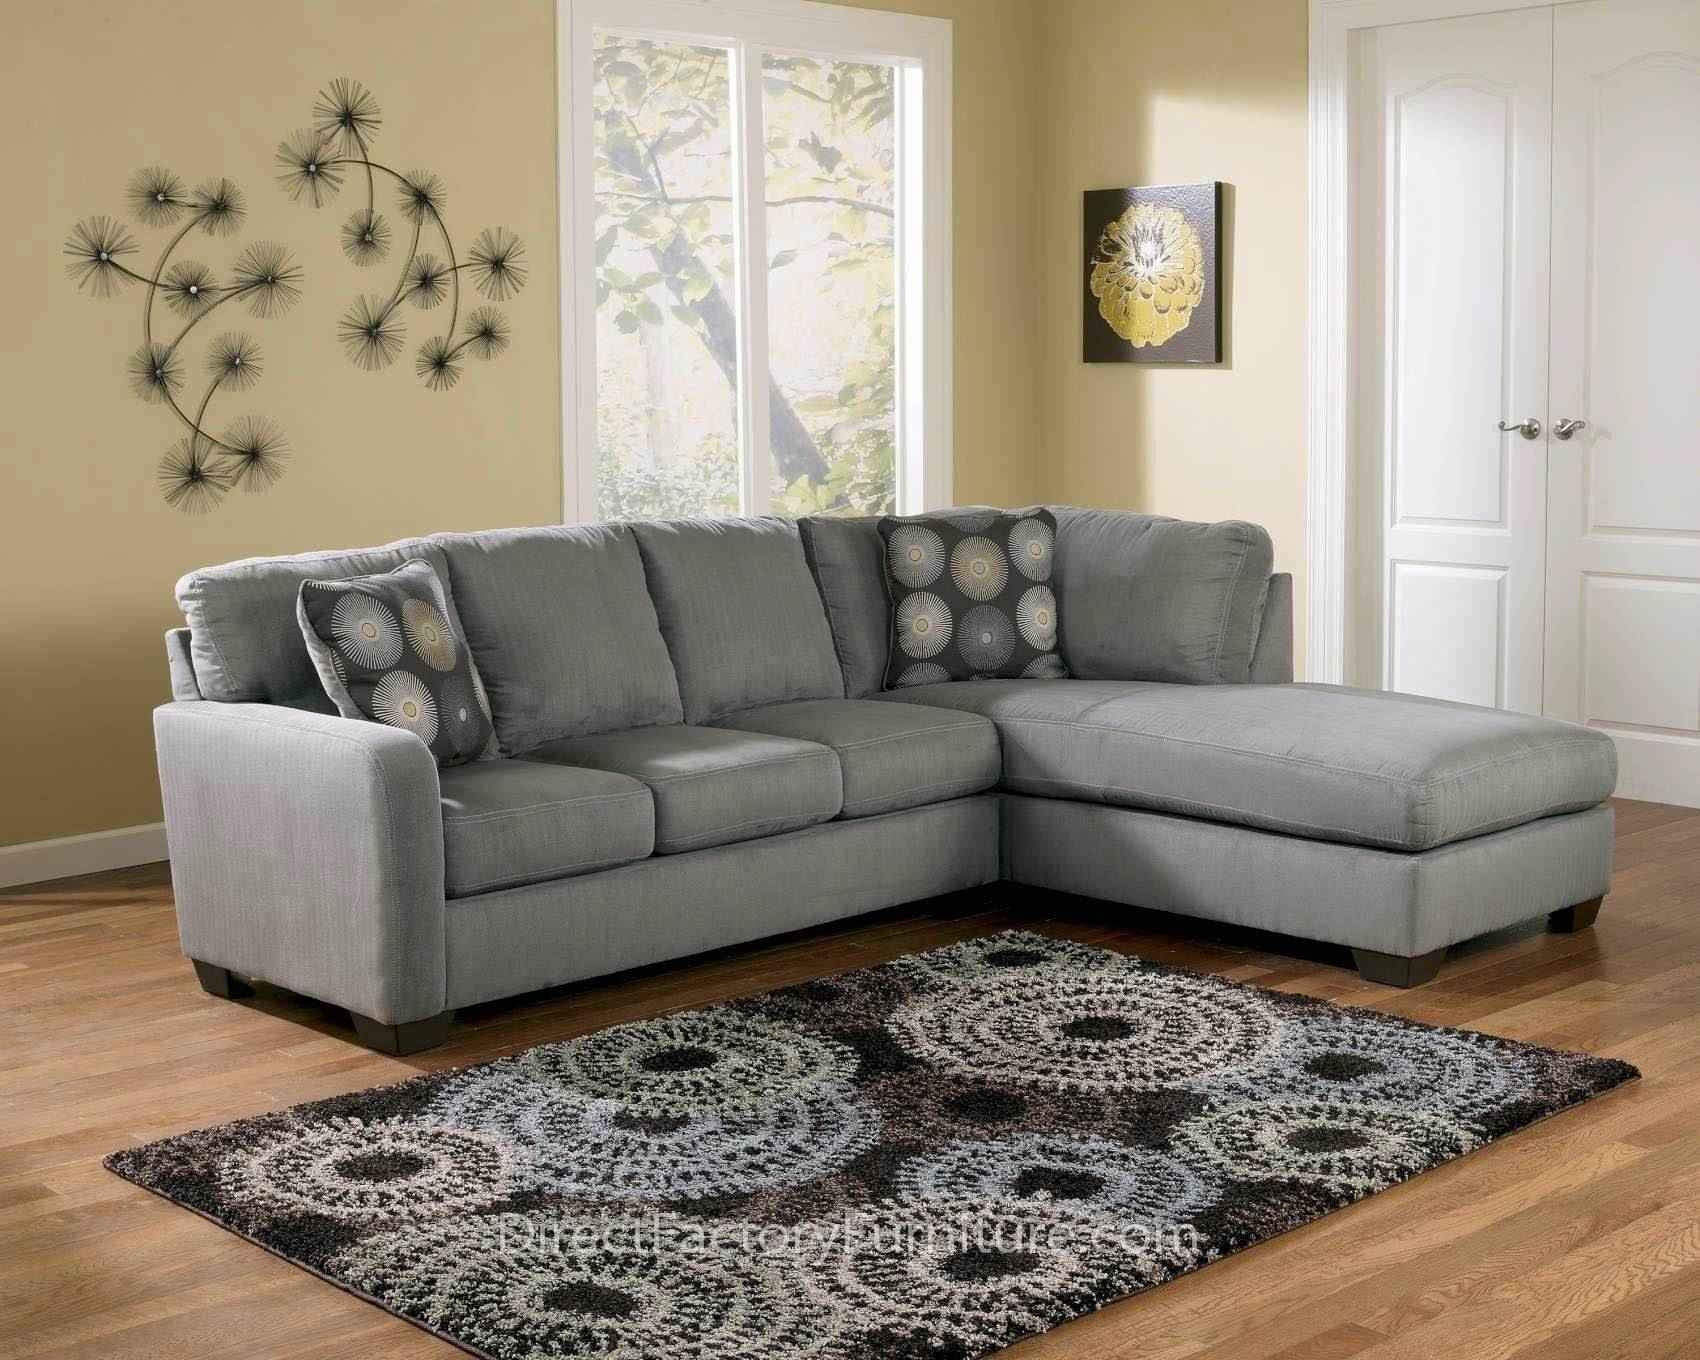 Furniture: Fabulous L Shaped Sofa For Modern Living Room pertaining to Cozy Sectional Sofas (Image 12 of 30)